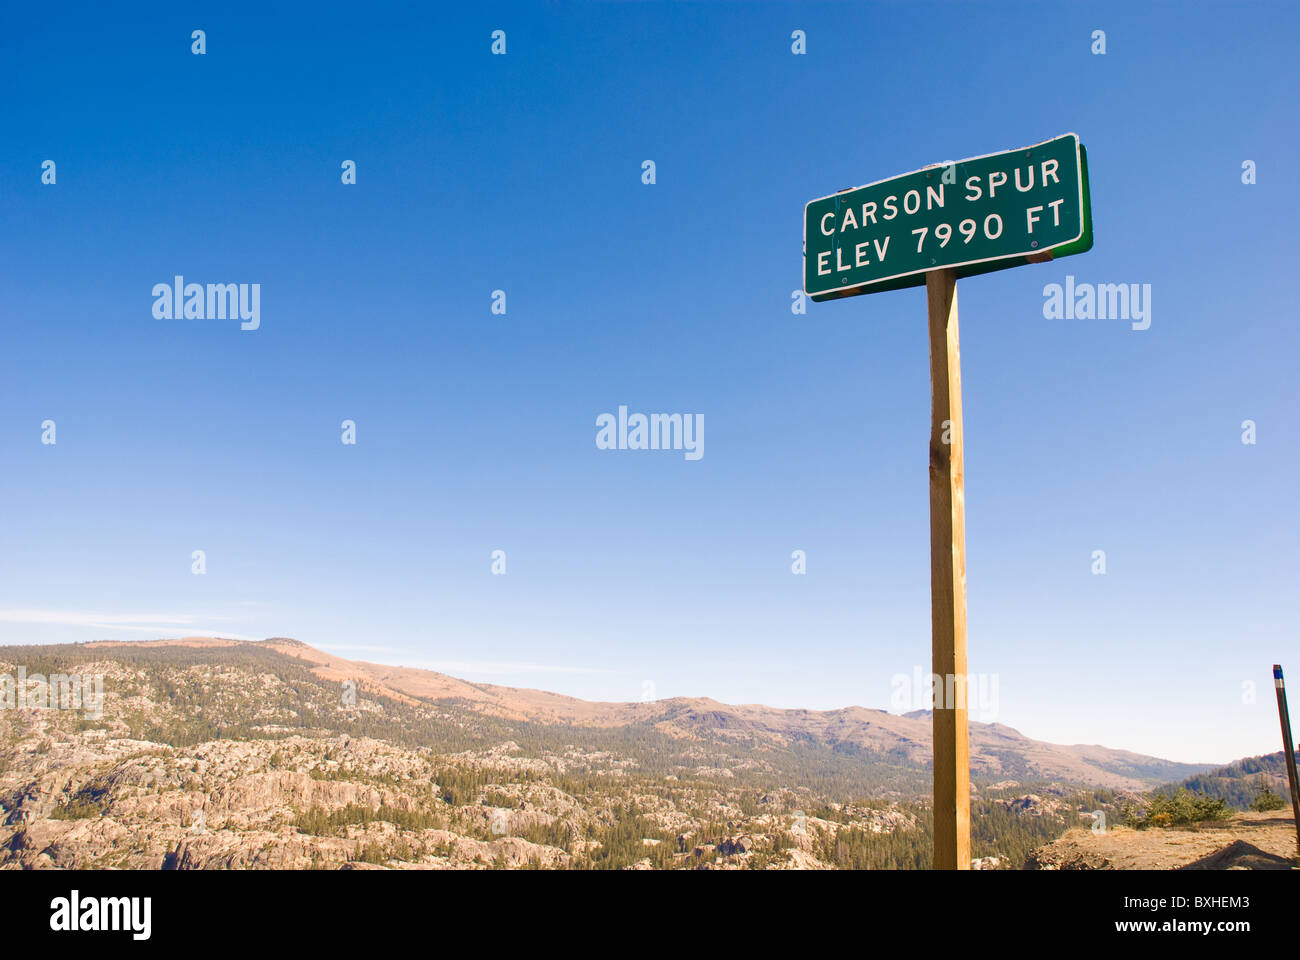 Scenic view of Carson Spur in Sierra Nevada Mountains, California Stock Photo